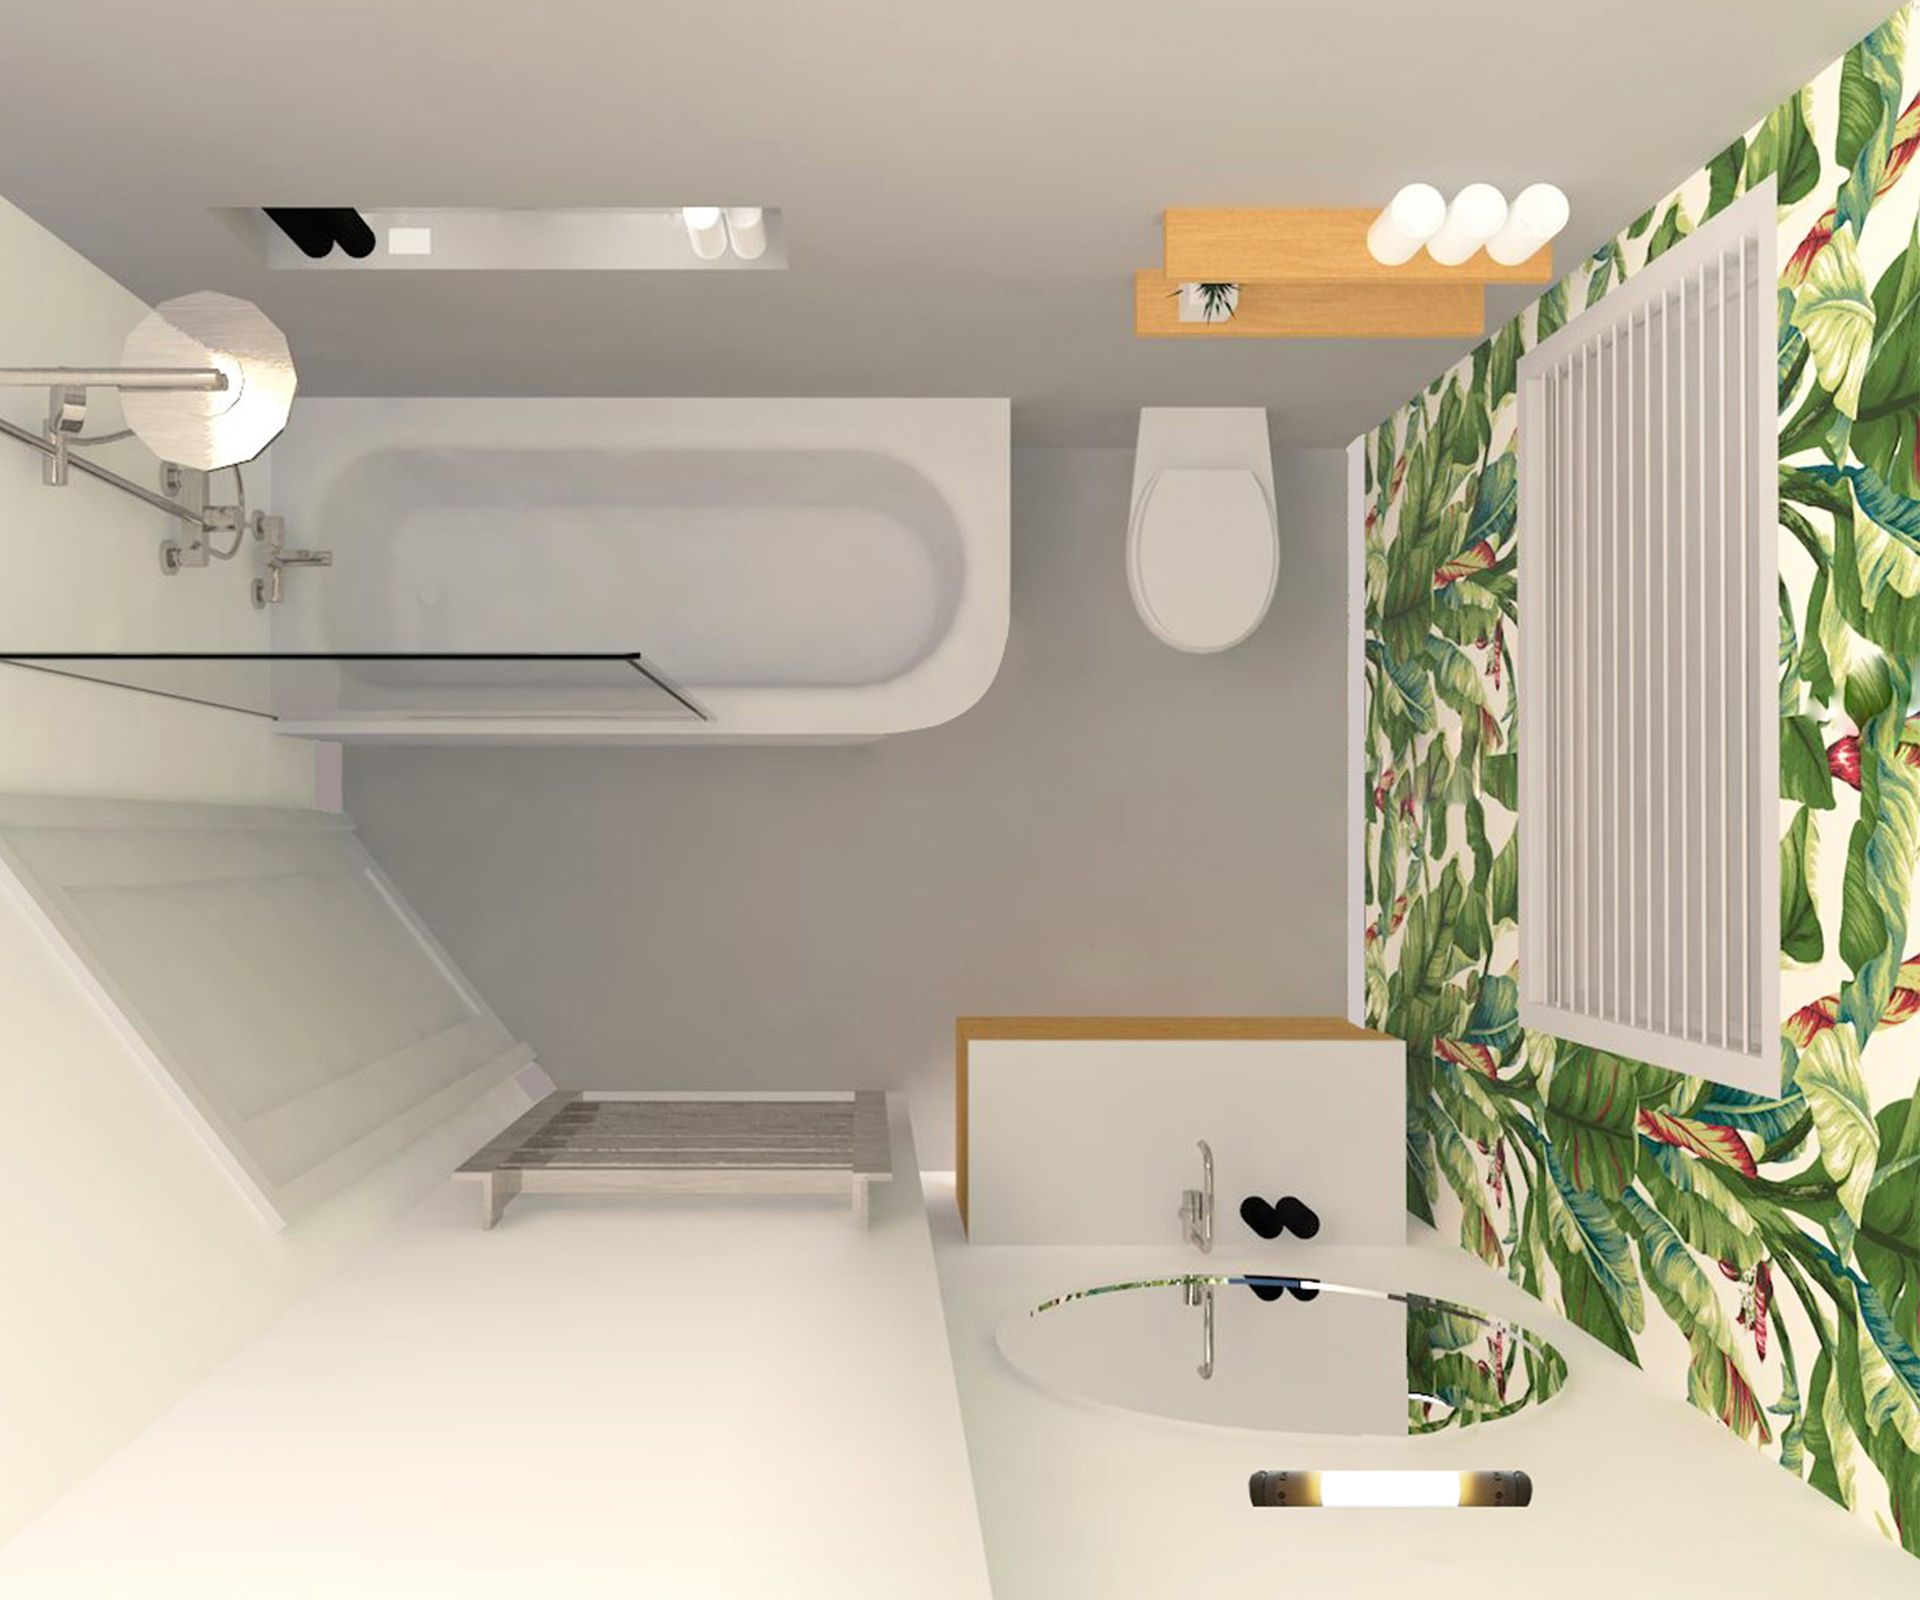 4 ways to redesign a small family bathroom with a 28 000 on bathroom renovation ideas nz id=13401